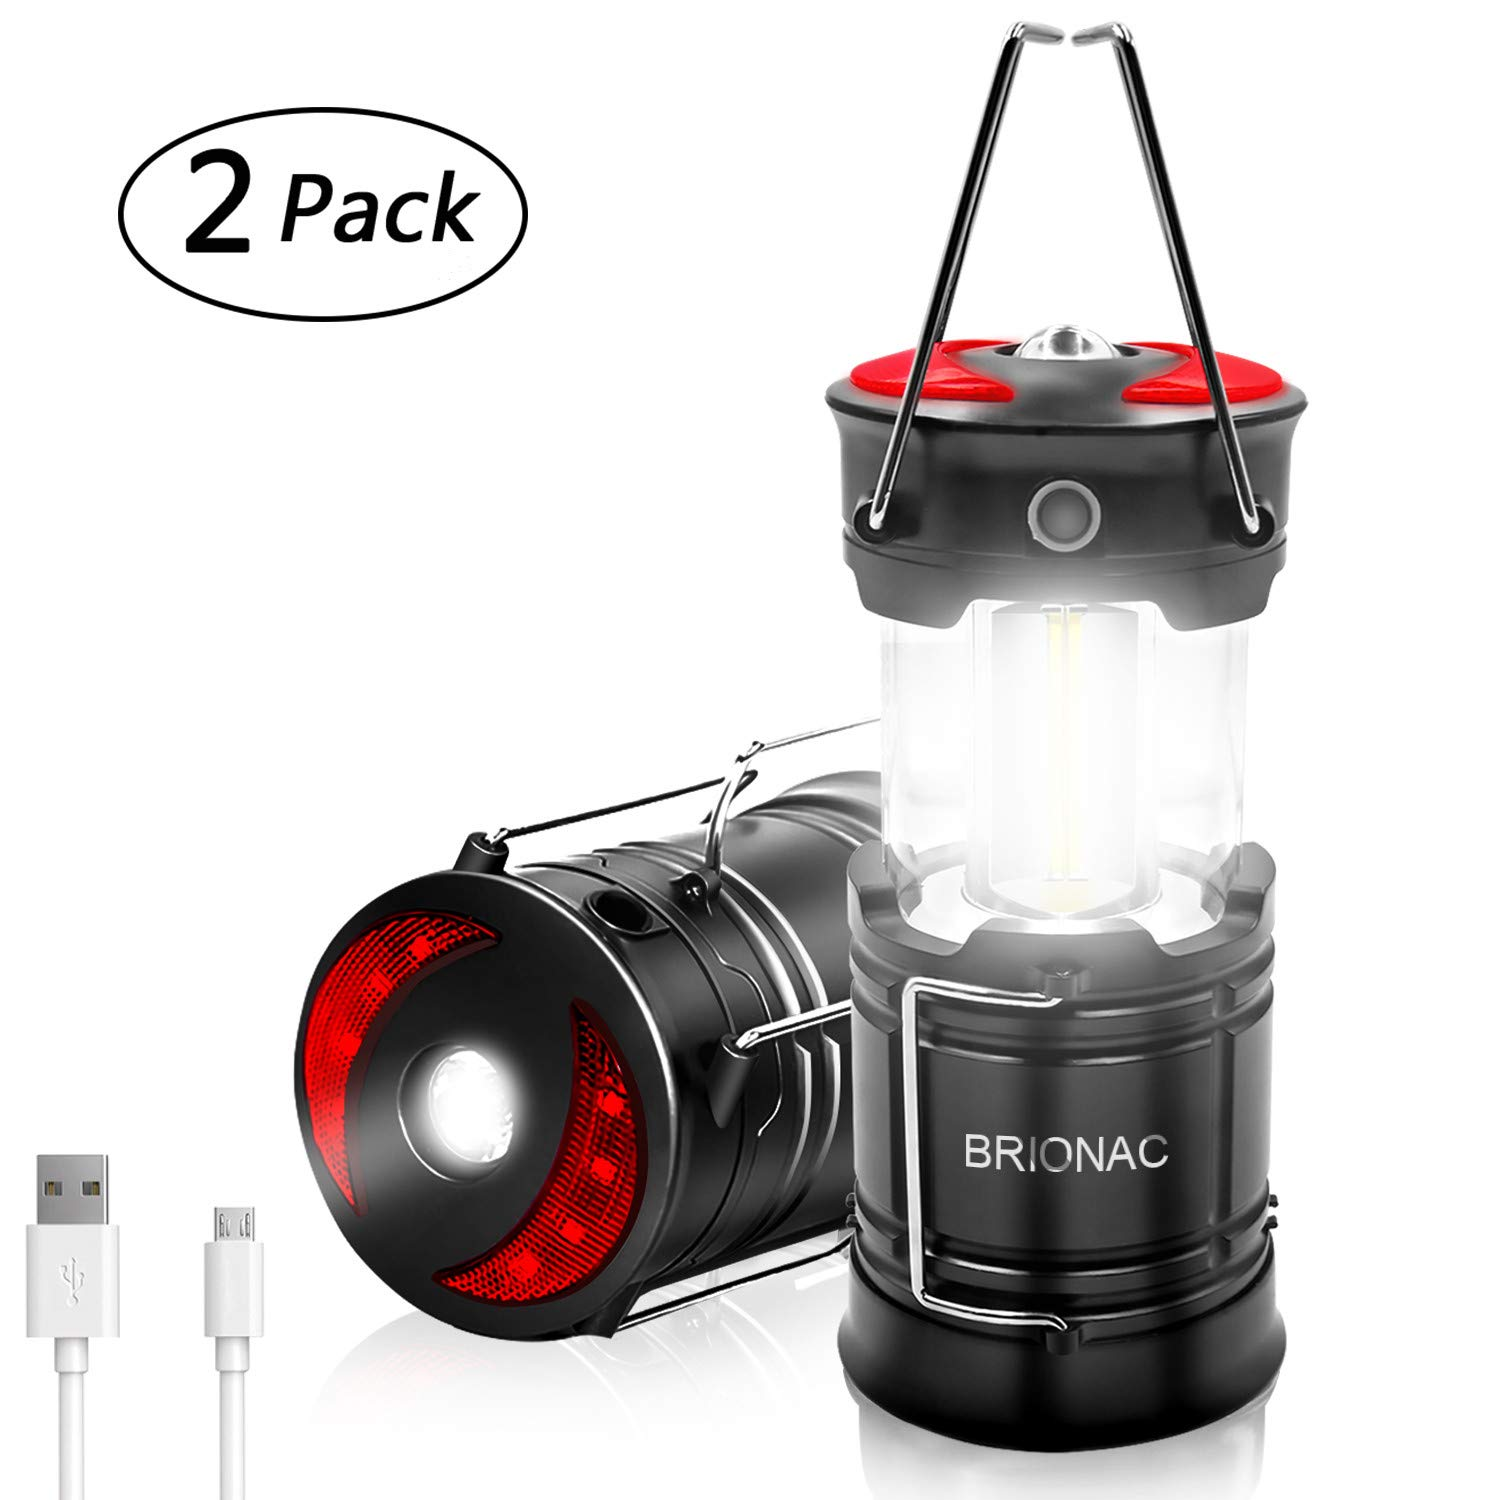 Rechargeable LED Camping Lantern, Brionac Newest Magnetic Lantern Tent Light 4-In-1 Flashlight with USB Cable, Best for Emergency, Hurricane, Power Outage - 2 Pack by BRIONAC